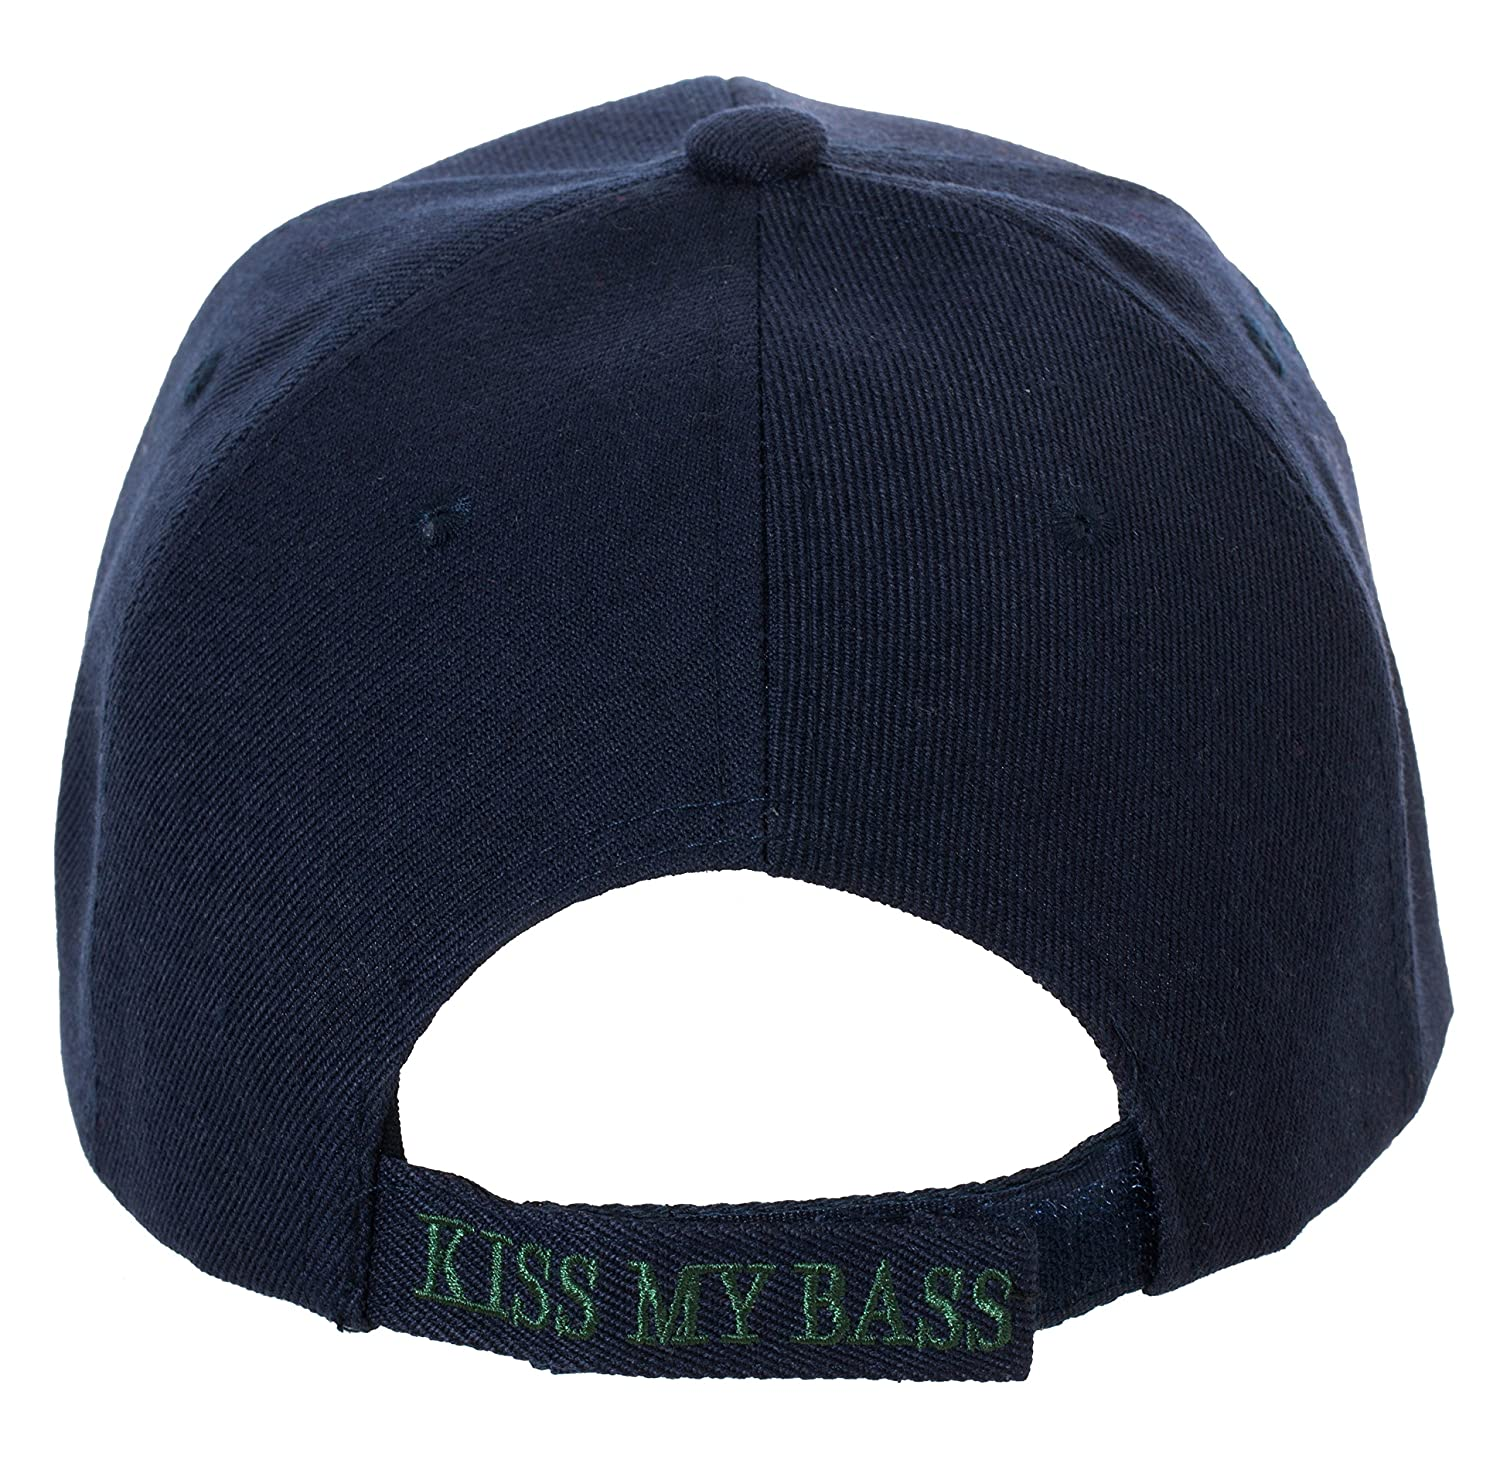 Amazon.com  Kiss My Bass Hat - Funny Fishing Fisherman Gift -100% Cotton  Embroidered Cap (Black)  Clothing a11a6e19e79